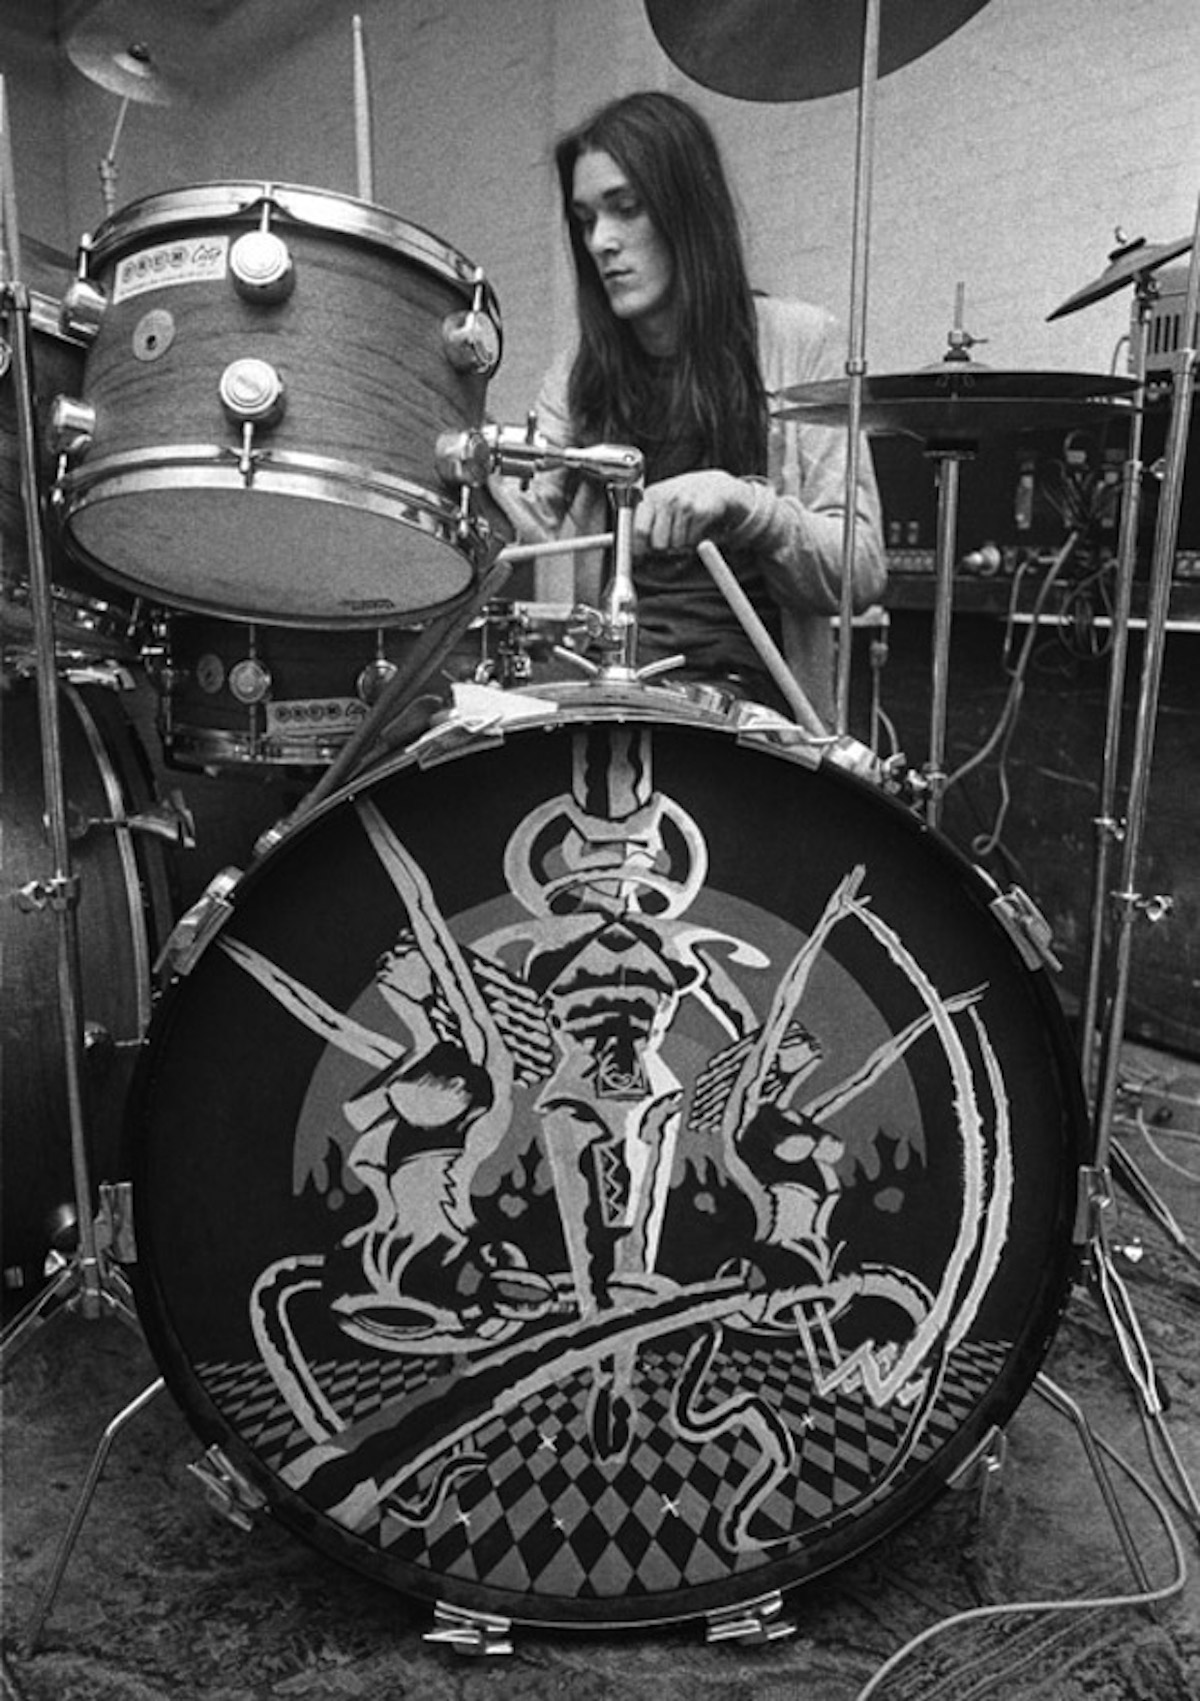 Simon King captured in a 1973 Hawkwind rehearsal with the companion drumhead in the foreground. Photo: (c) Barrie Wentzell/www.barriewentzell.com